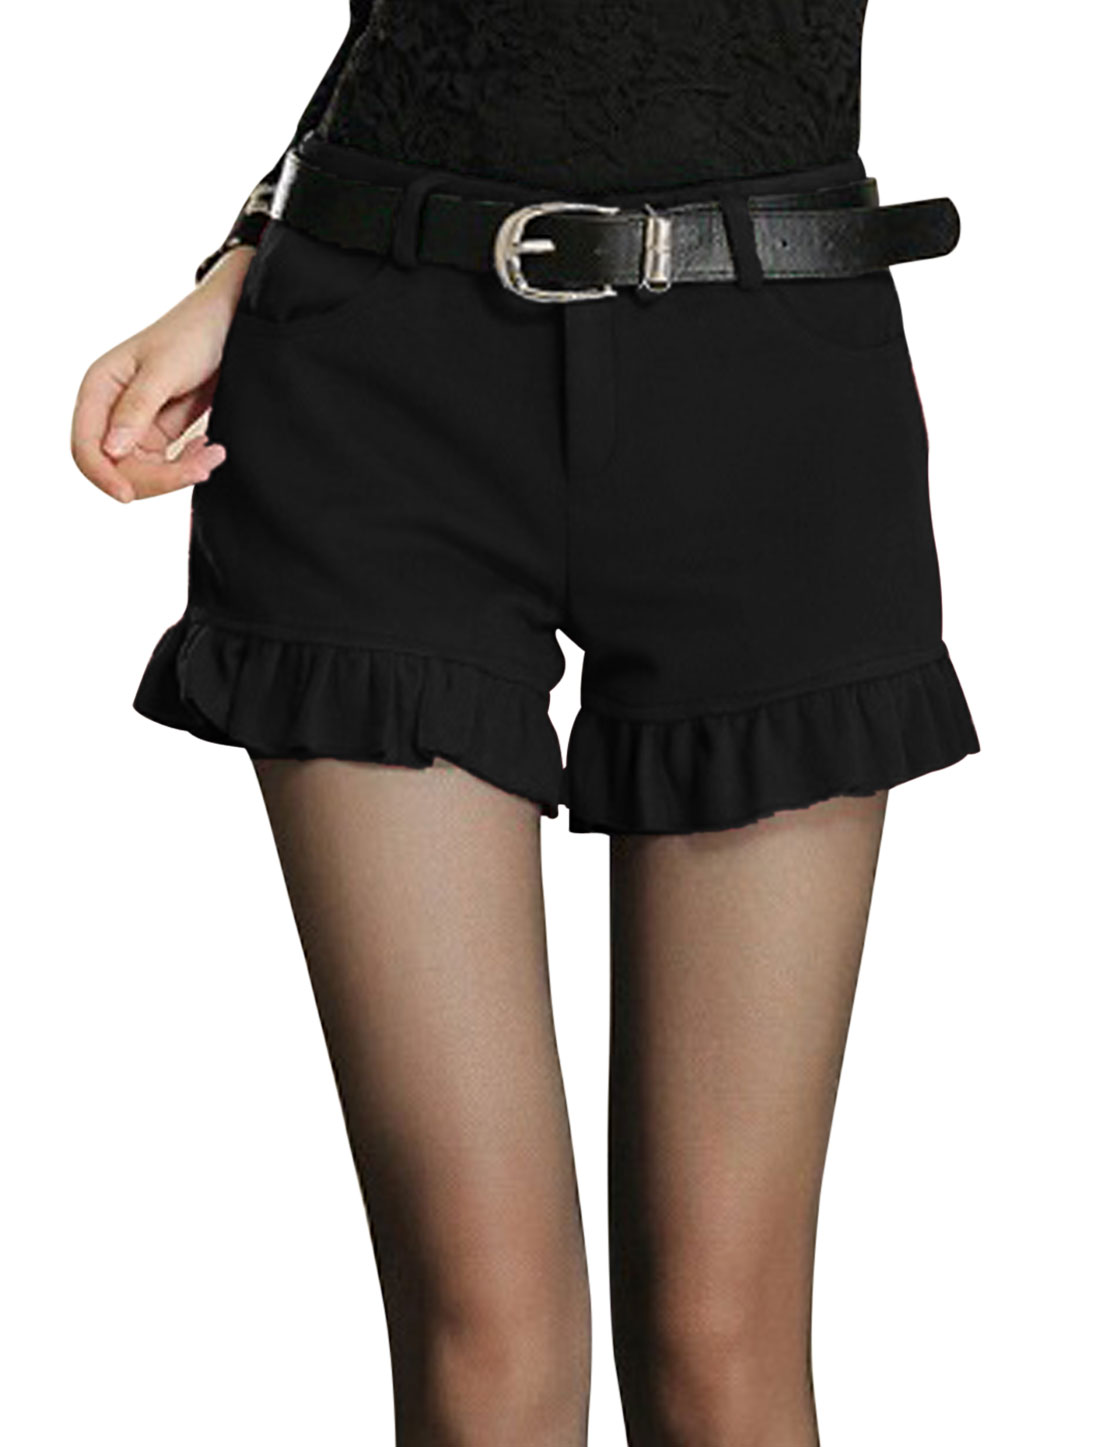 Women Natural Waist Zip Closure Stylish Worsted Shorts Black M